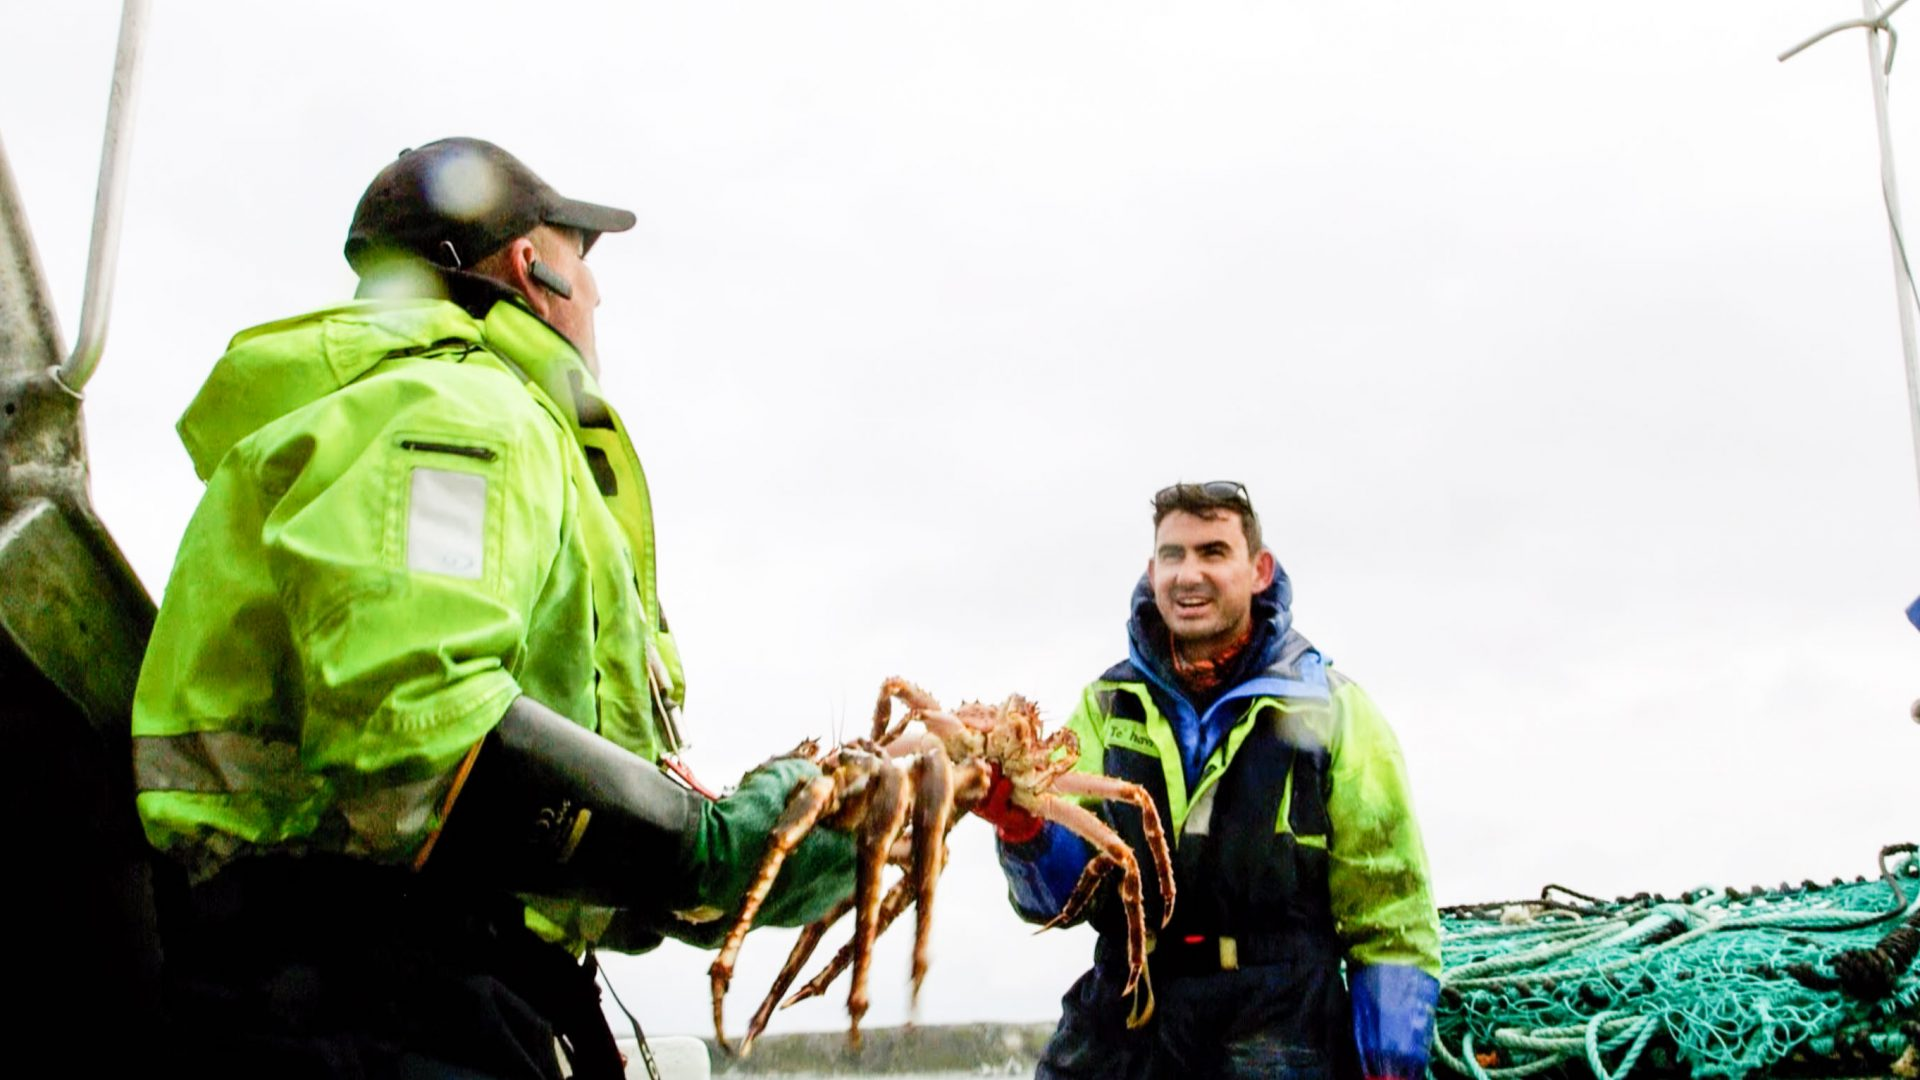 Simon helps to trap invasive crabs in the Arctic Ocean around Honningsvåg, Norway, during his epic journey across the Scandinavian Peninsula.